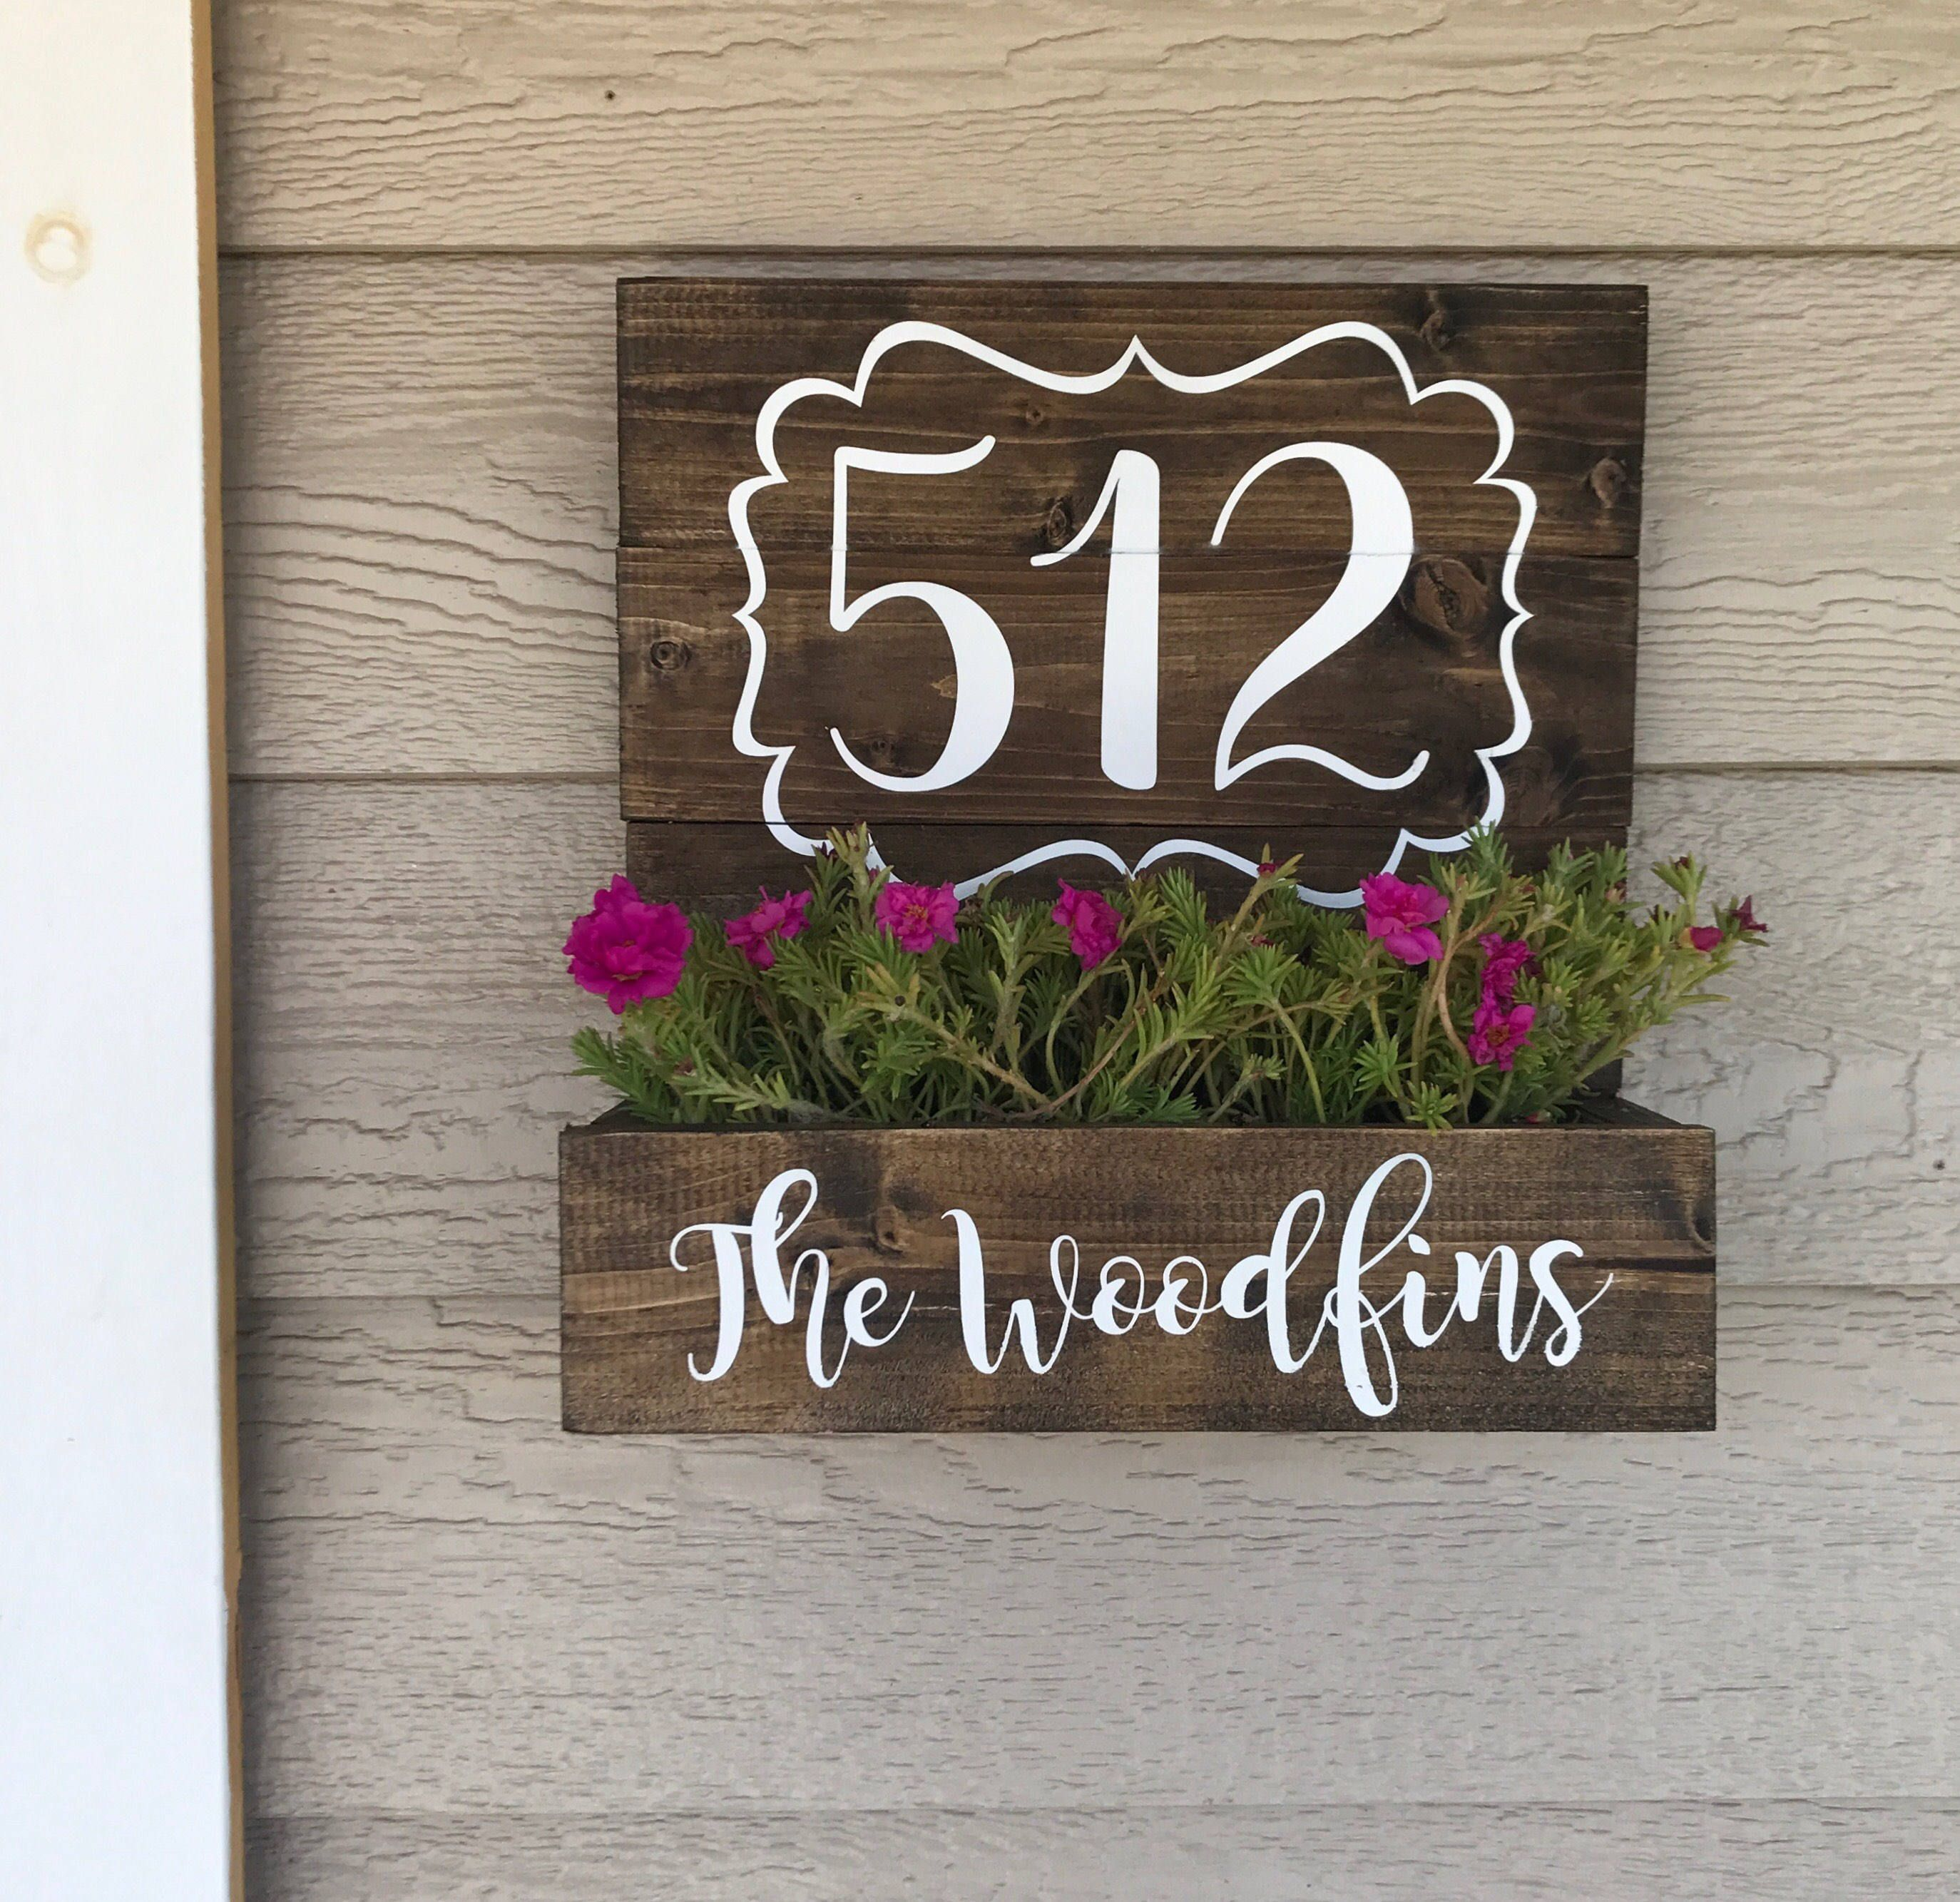 House Number Planter Wooden Address Planter Box | Around the house ...